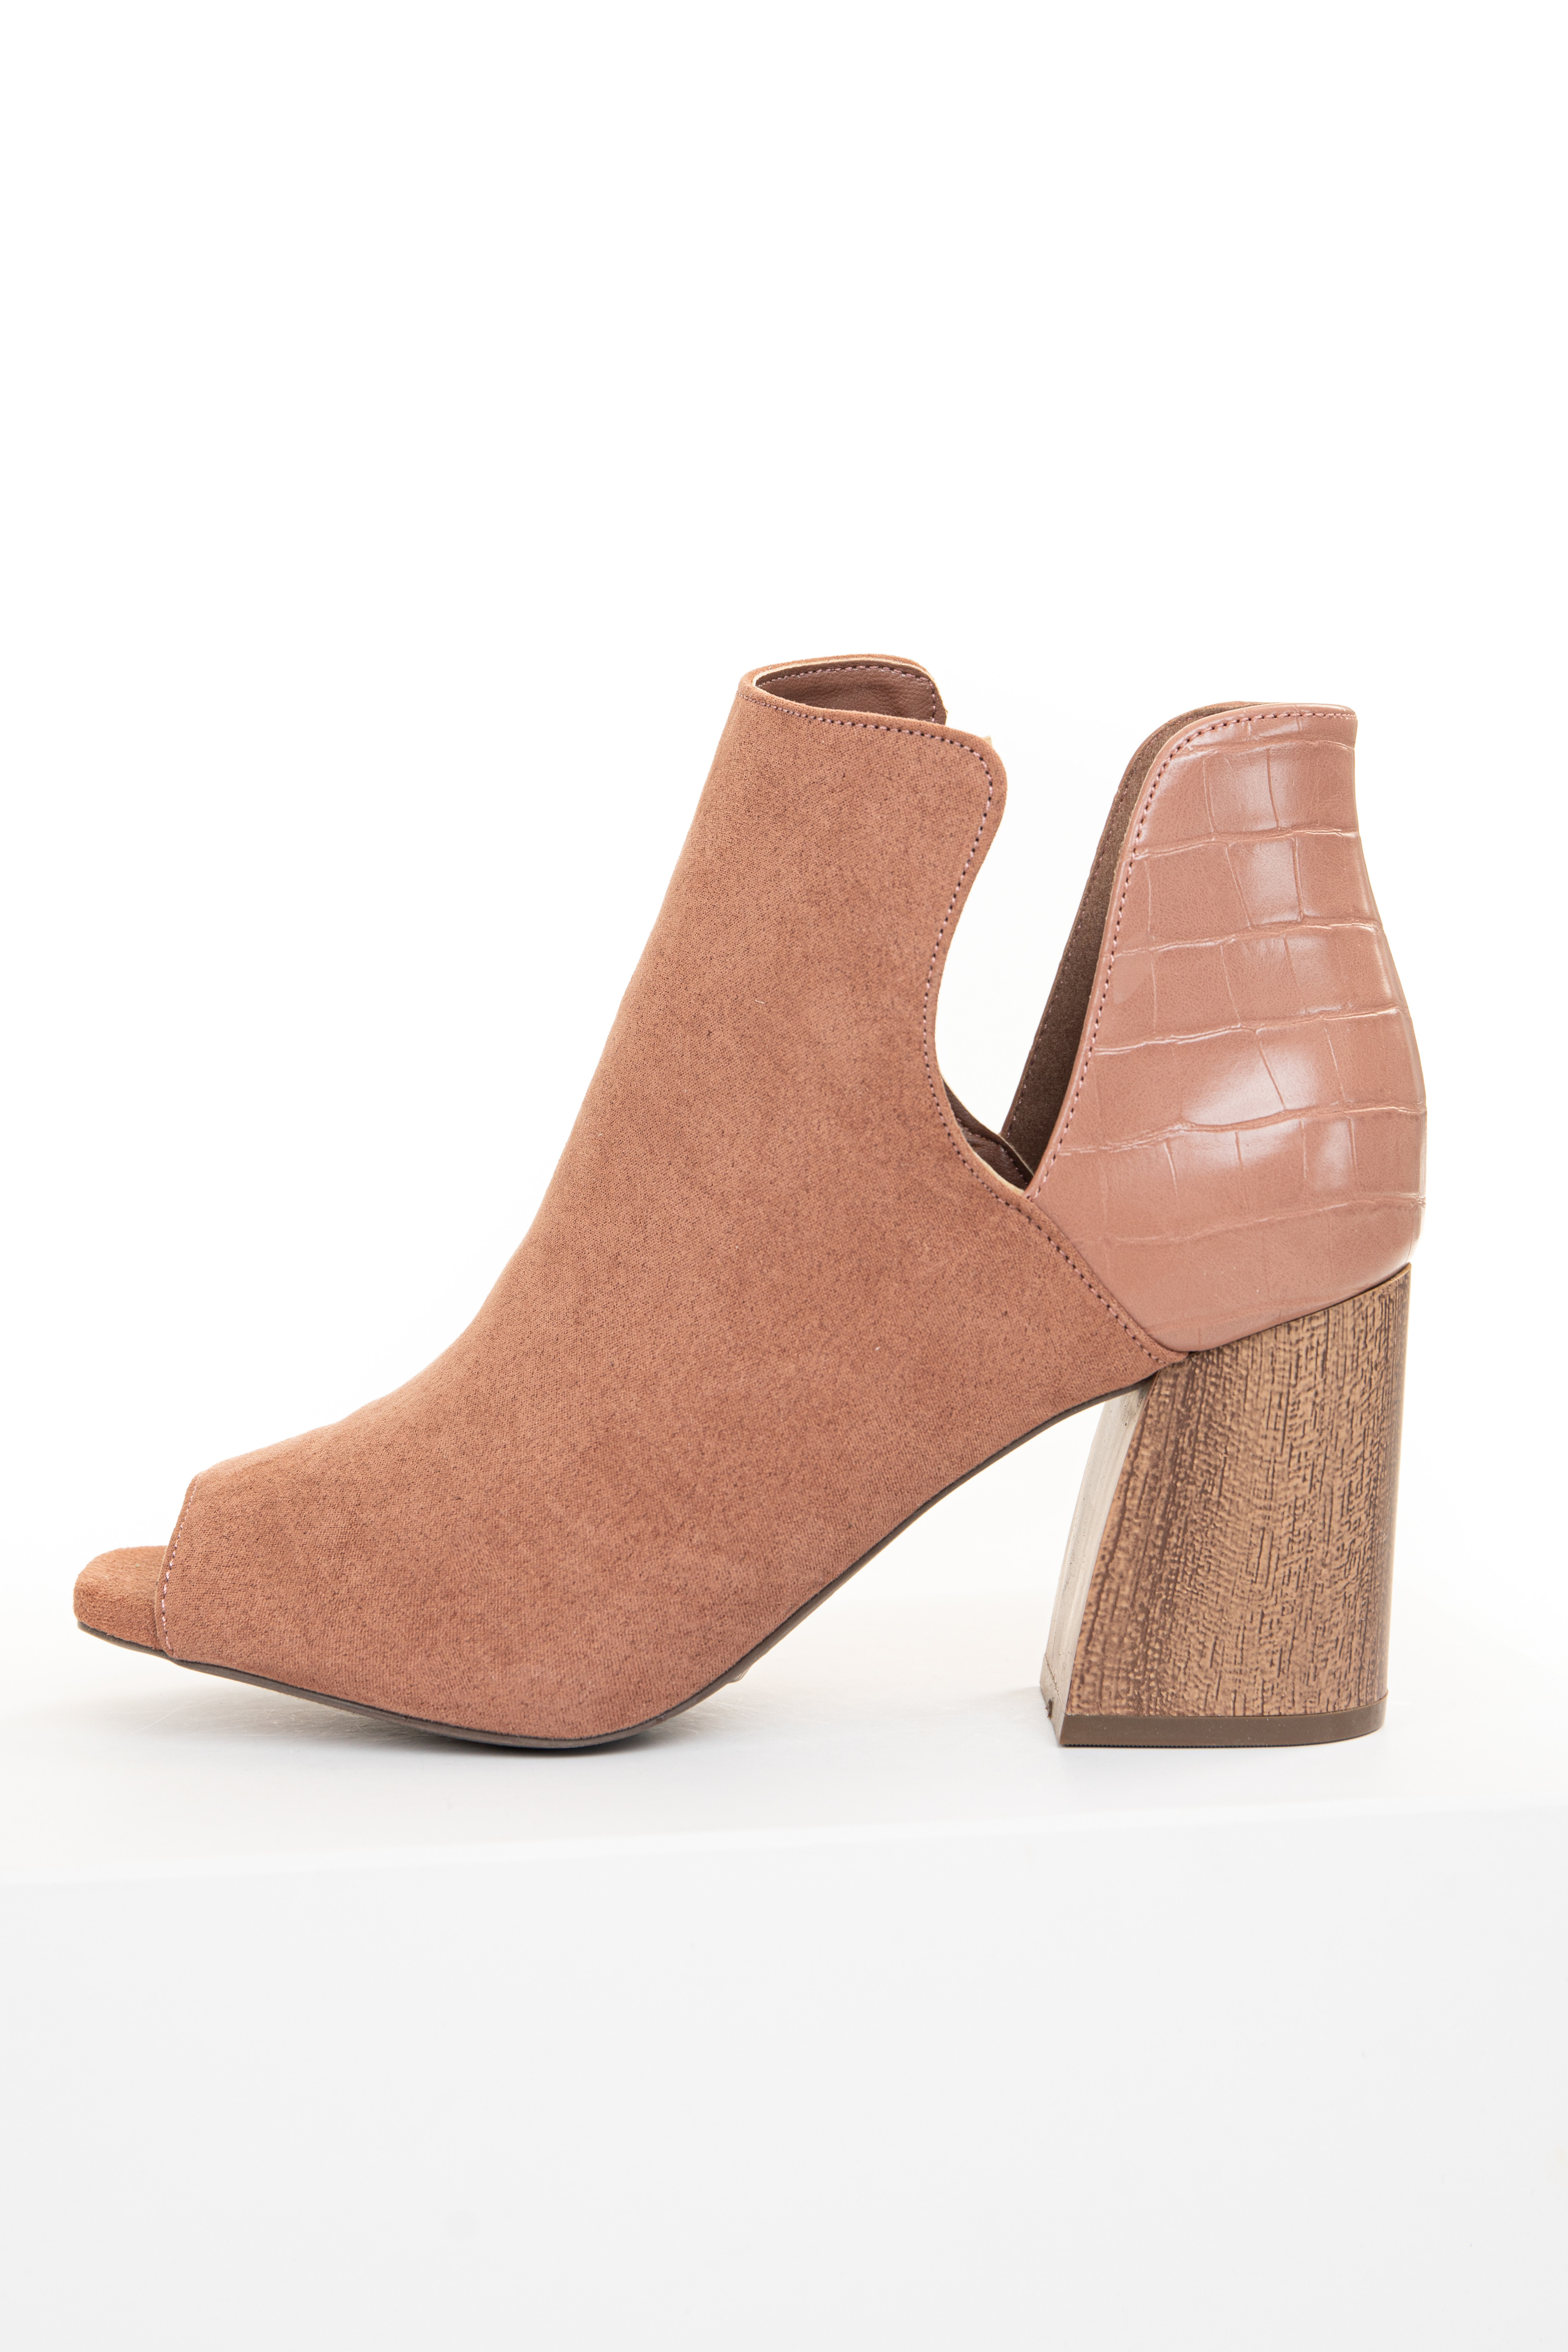 Sienna Faux Suede and Textured Leather Open Toed Booties